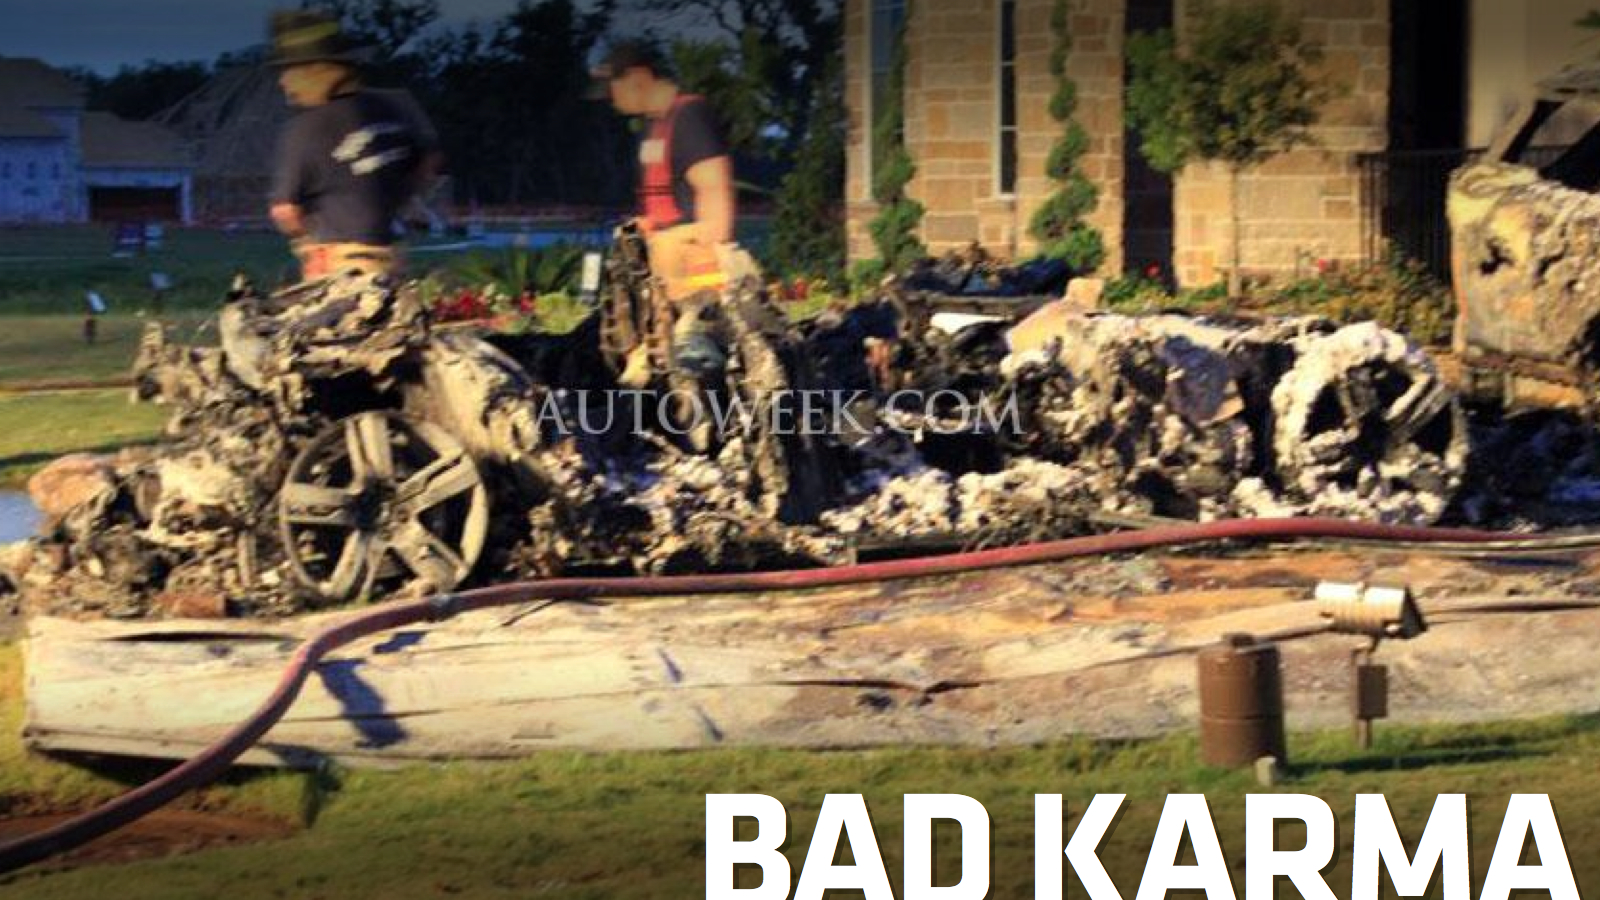 Brand New Fisker Karma Blamed For House Fire - Jalopnik